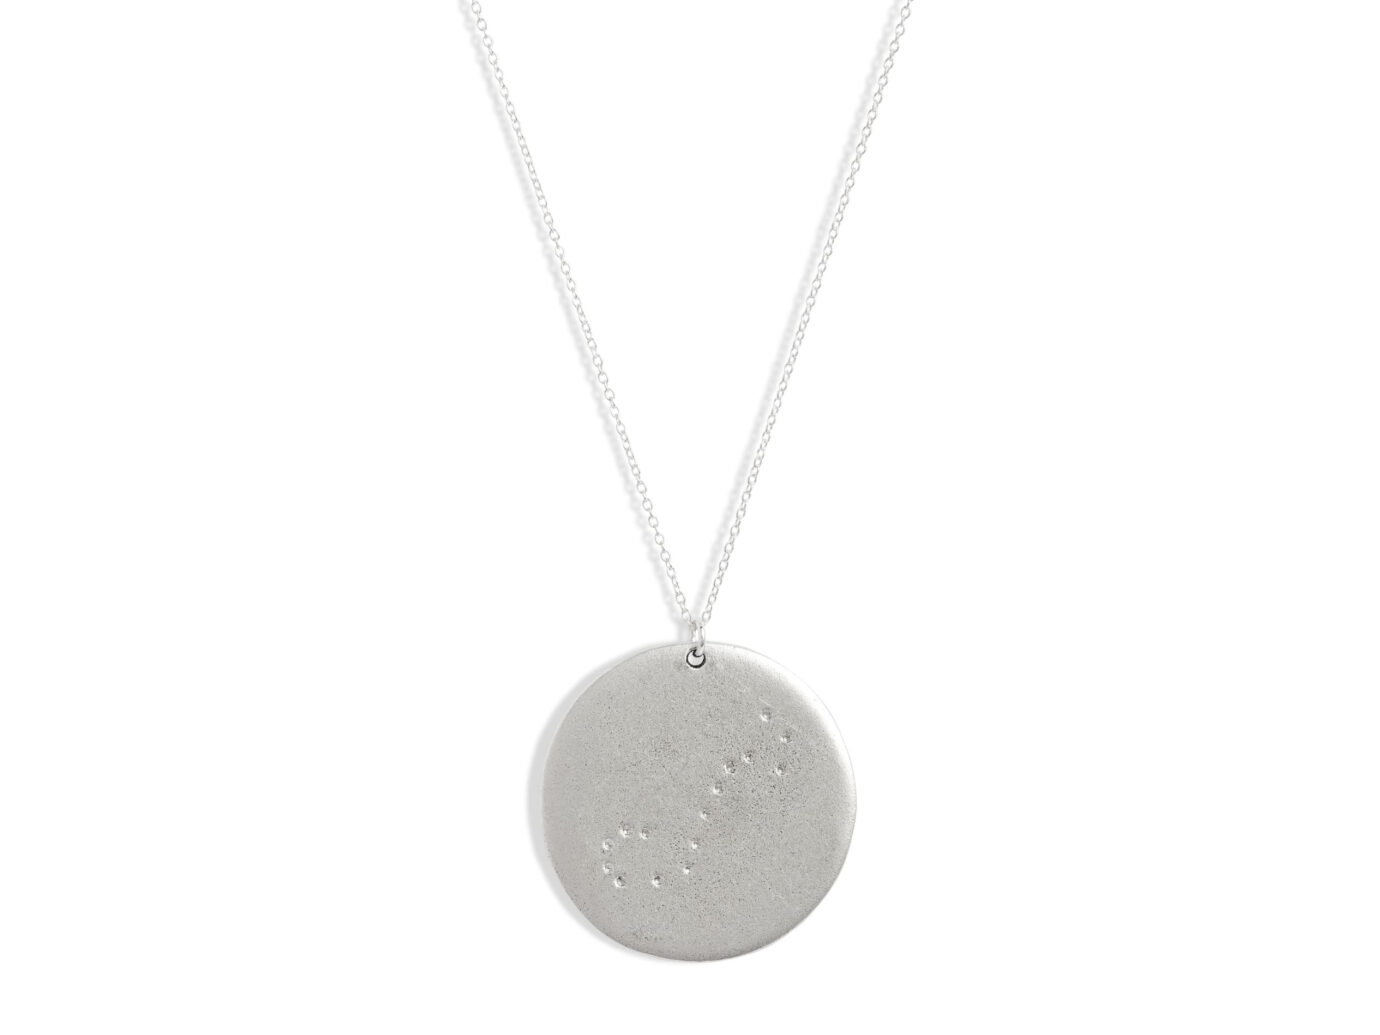 Set & Stones Zodiac Constellation Pendant Necklace